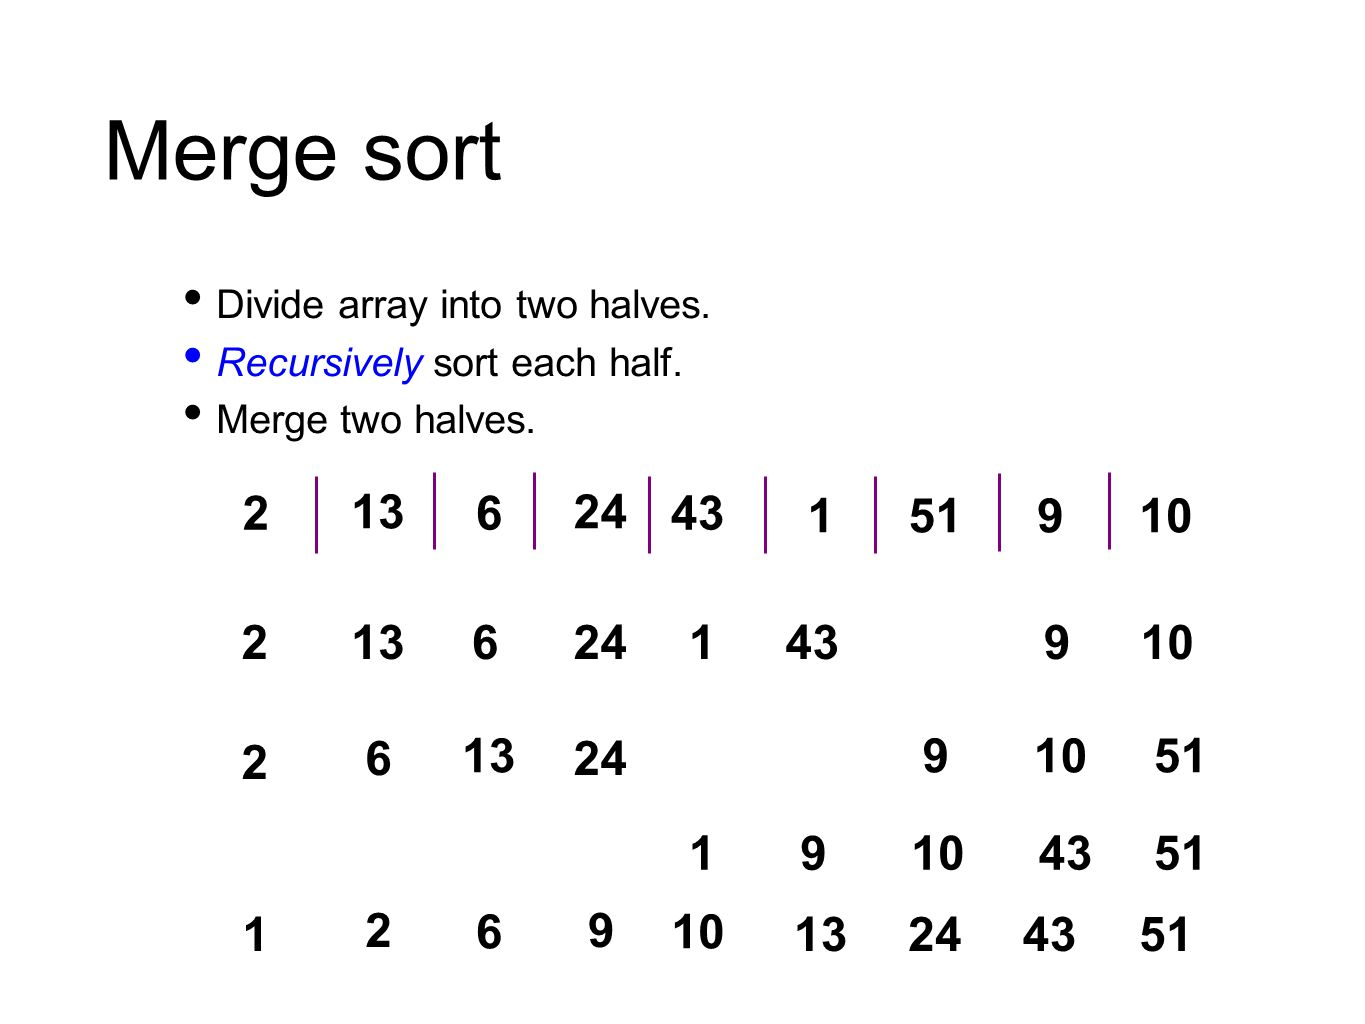 Complexity insertion sort (N 2 )mergesort (N log N)quicksort (N log N) compute r thous and millionbillion thousan d millionbillion thousan d millio n billion home instan t 2.8 hours 317 years instant 1 second 18 min instant 0.6 sec 12 min super instan t 1 second 1 weekinstant Laptop executes 10 8 compares/second.